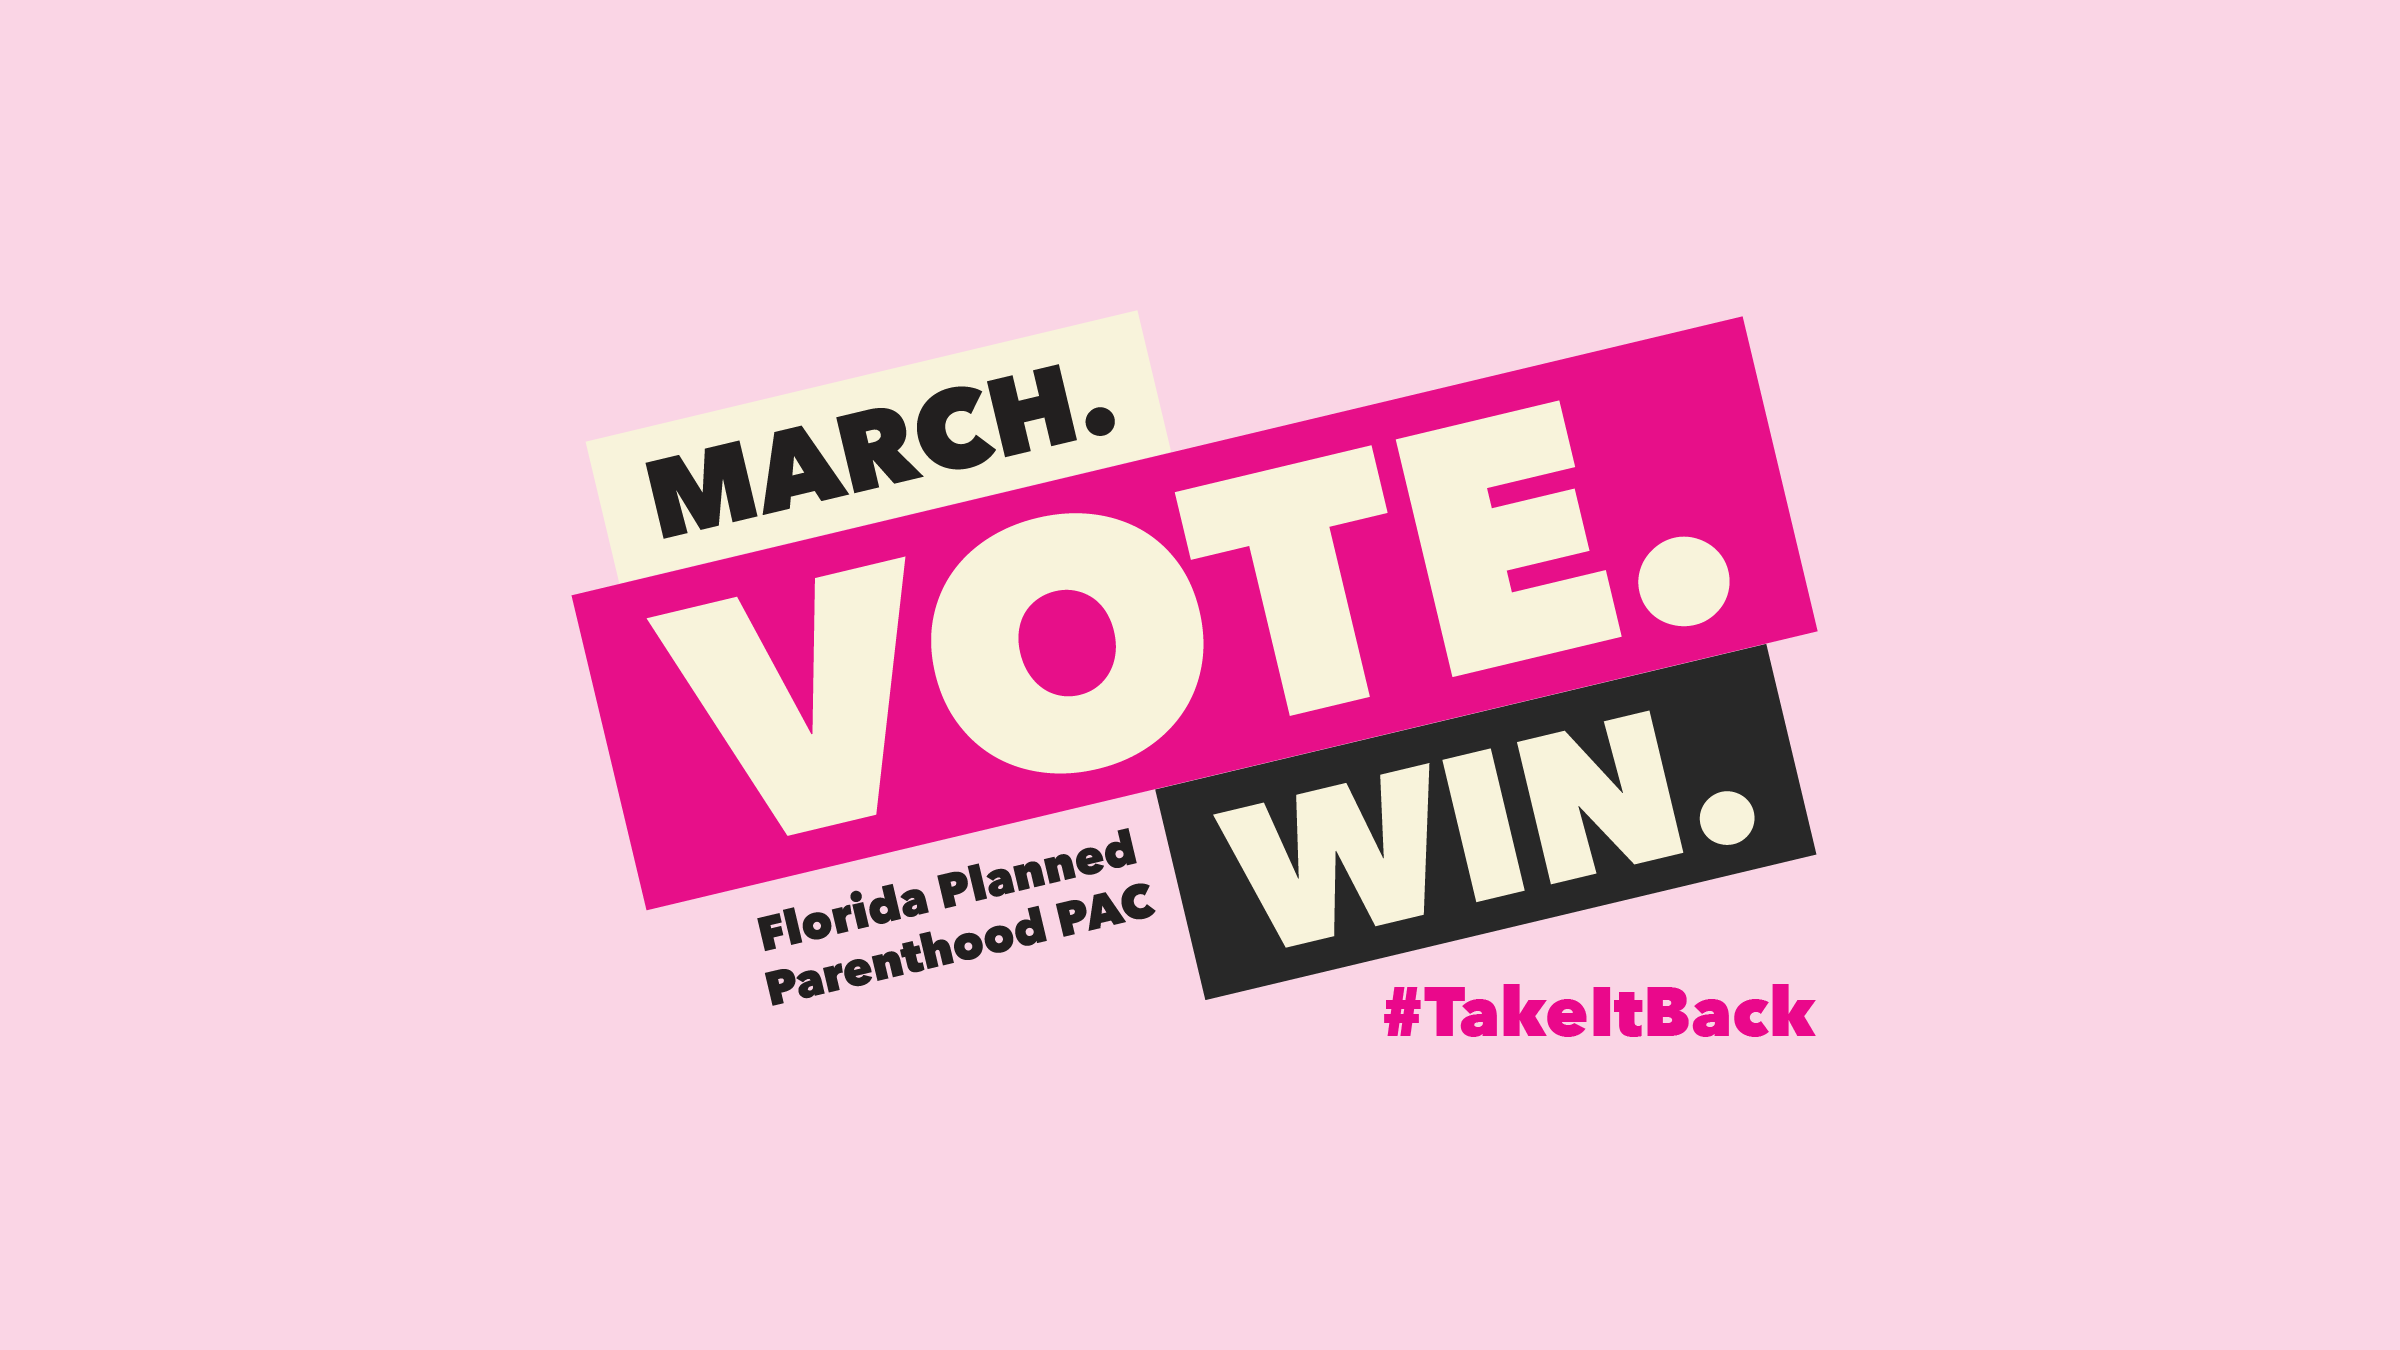 Florida Planned Parenthood PAC - Electing pre-reproductive